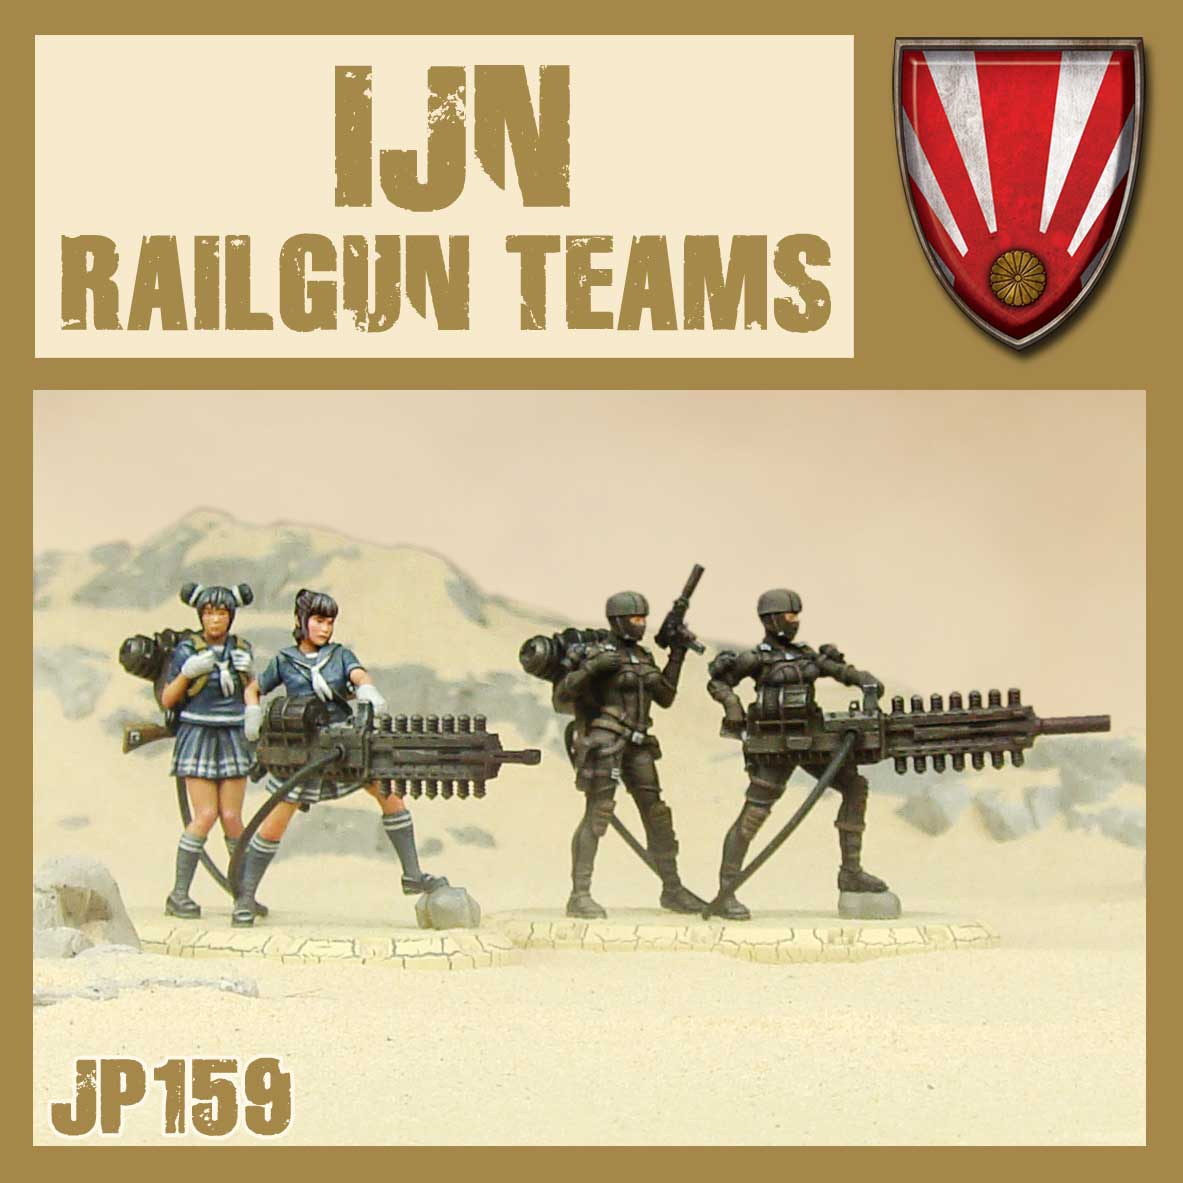 IJN Railgun Teams